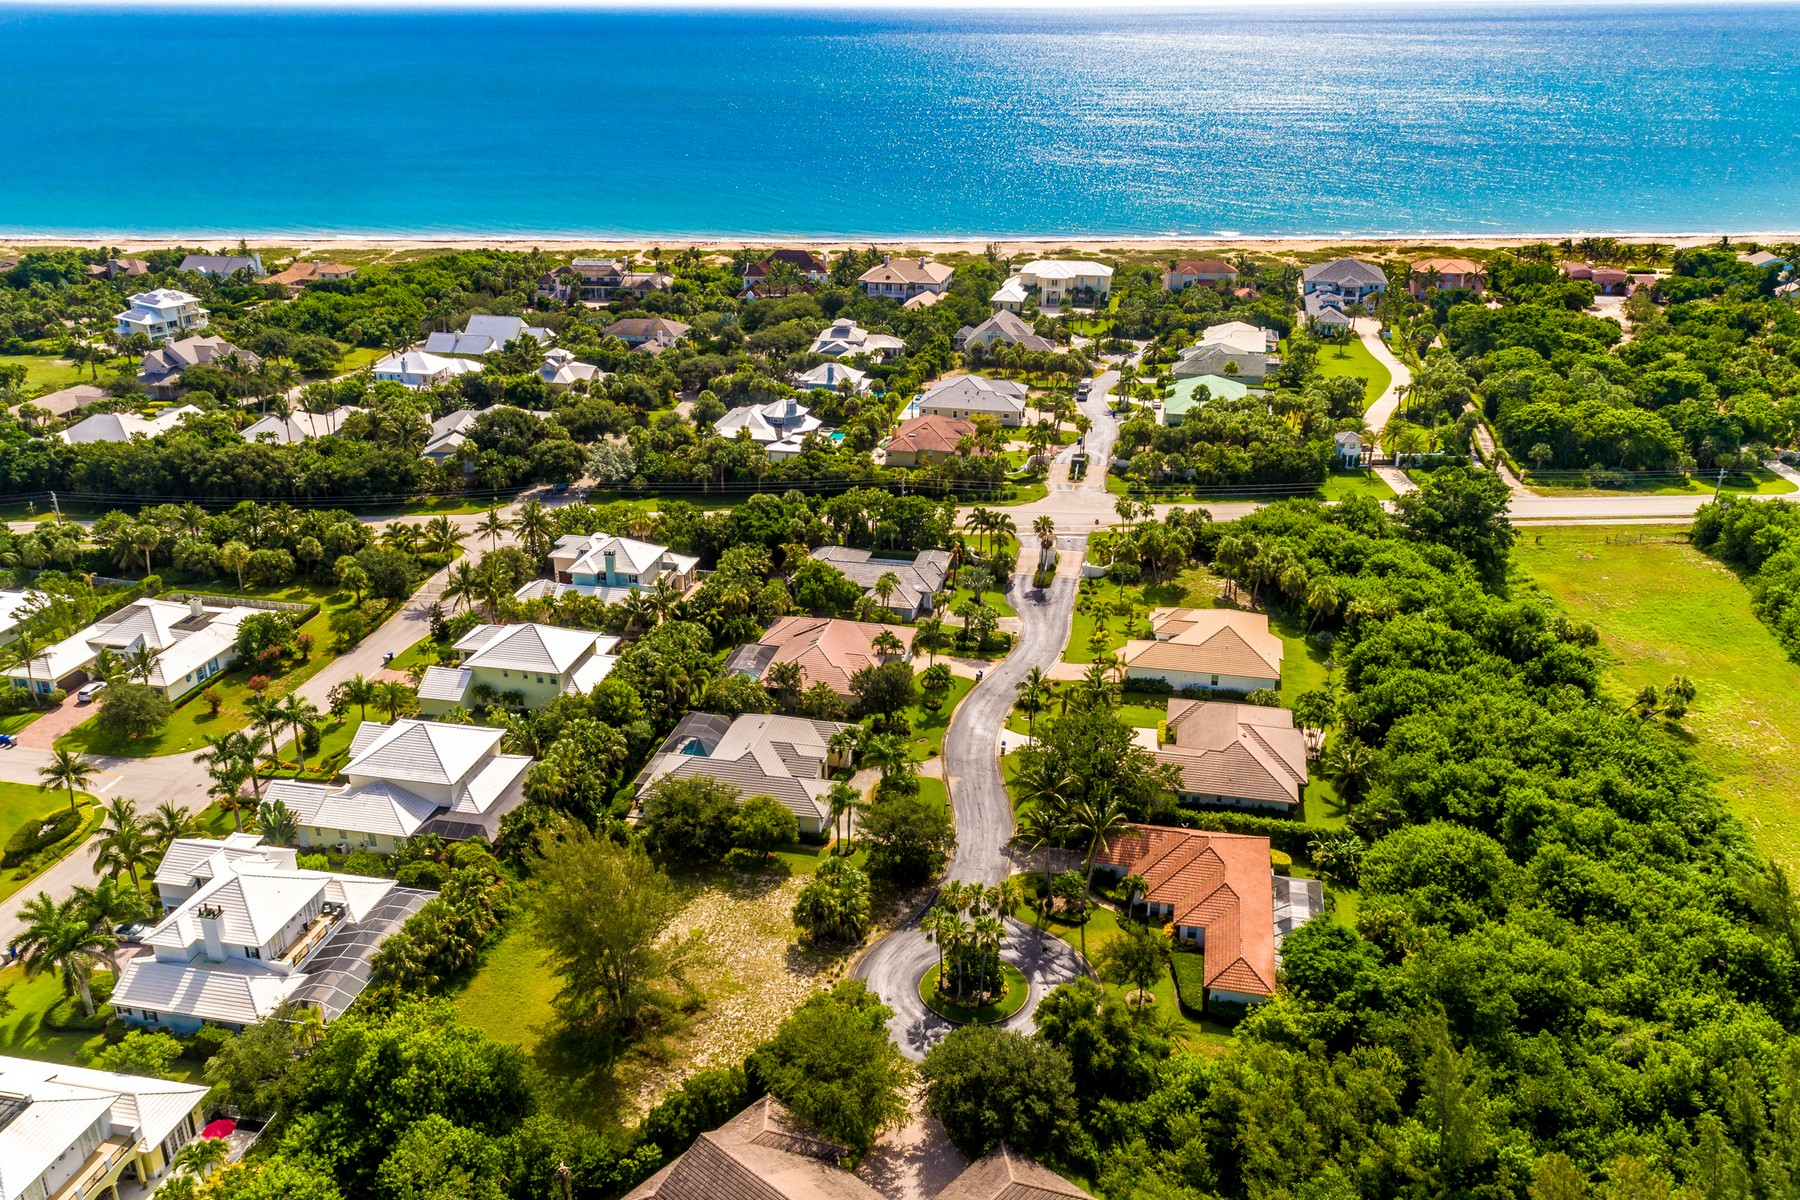 Land for Sale at Large Private Homesite for Your Dream Home in South Beach 2120 W Beachside Lane Vero Beach, Florida 32963 United States